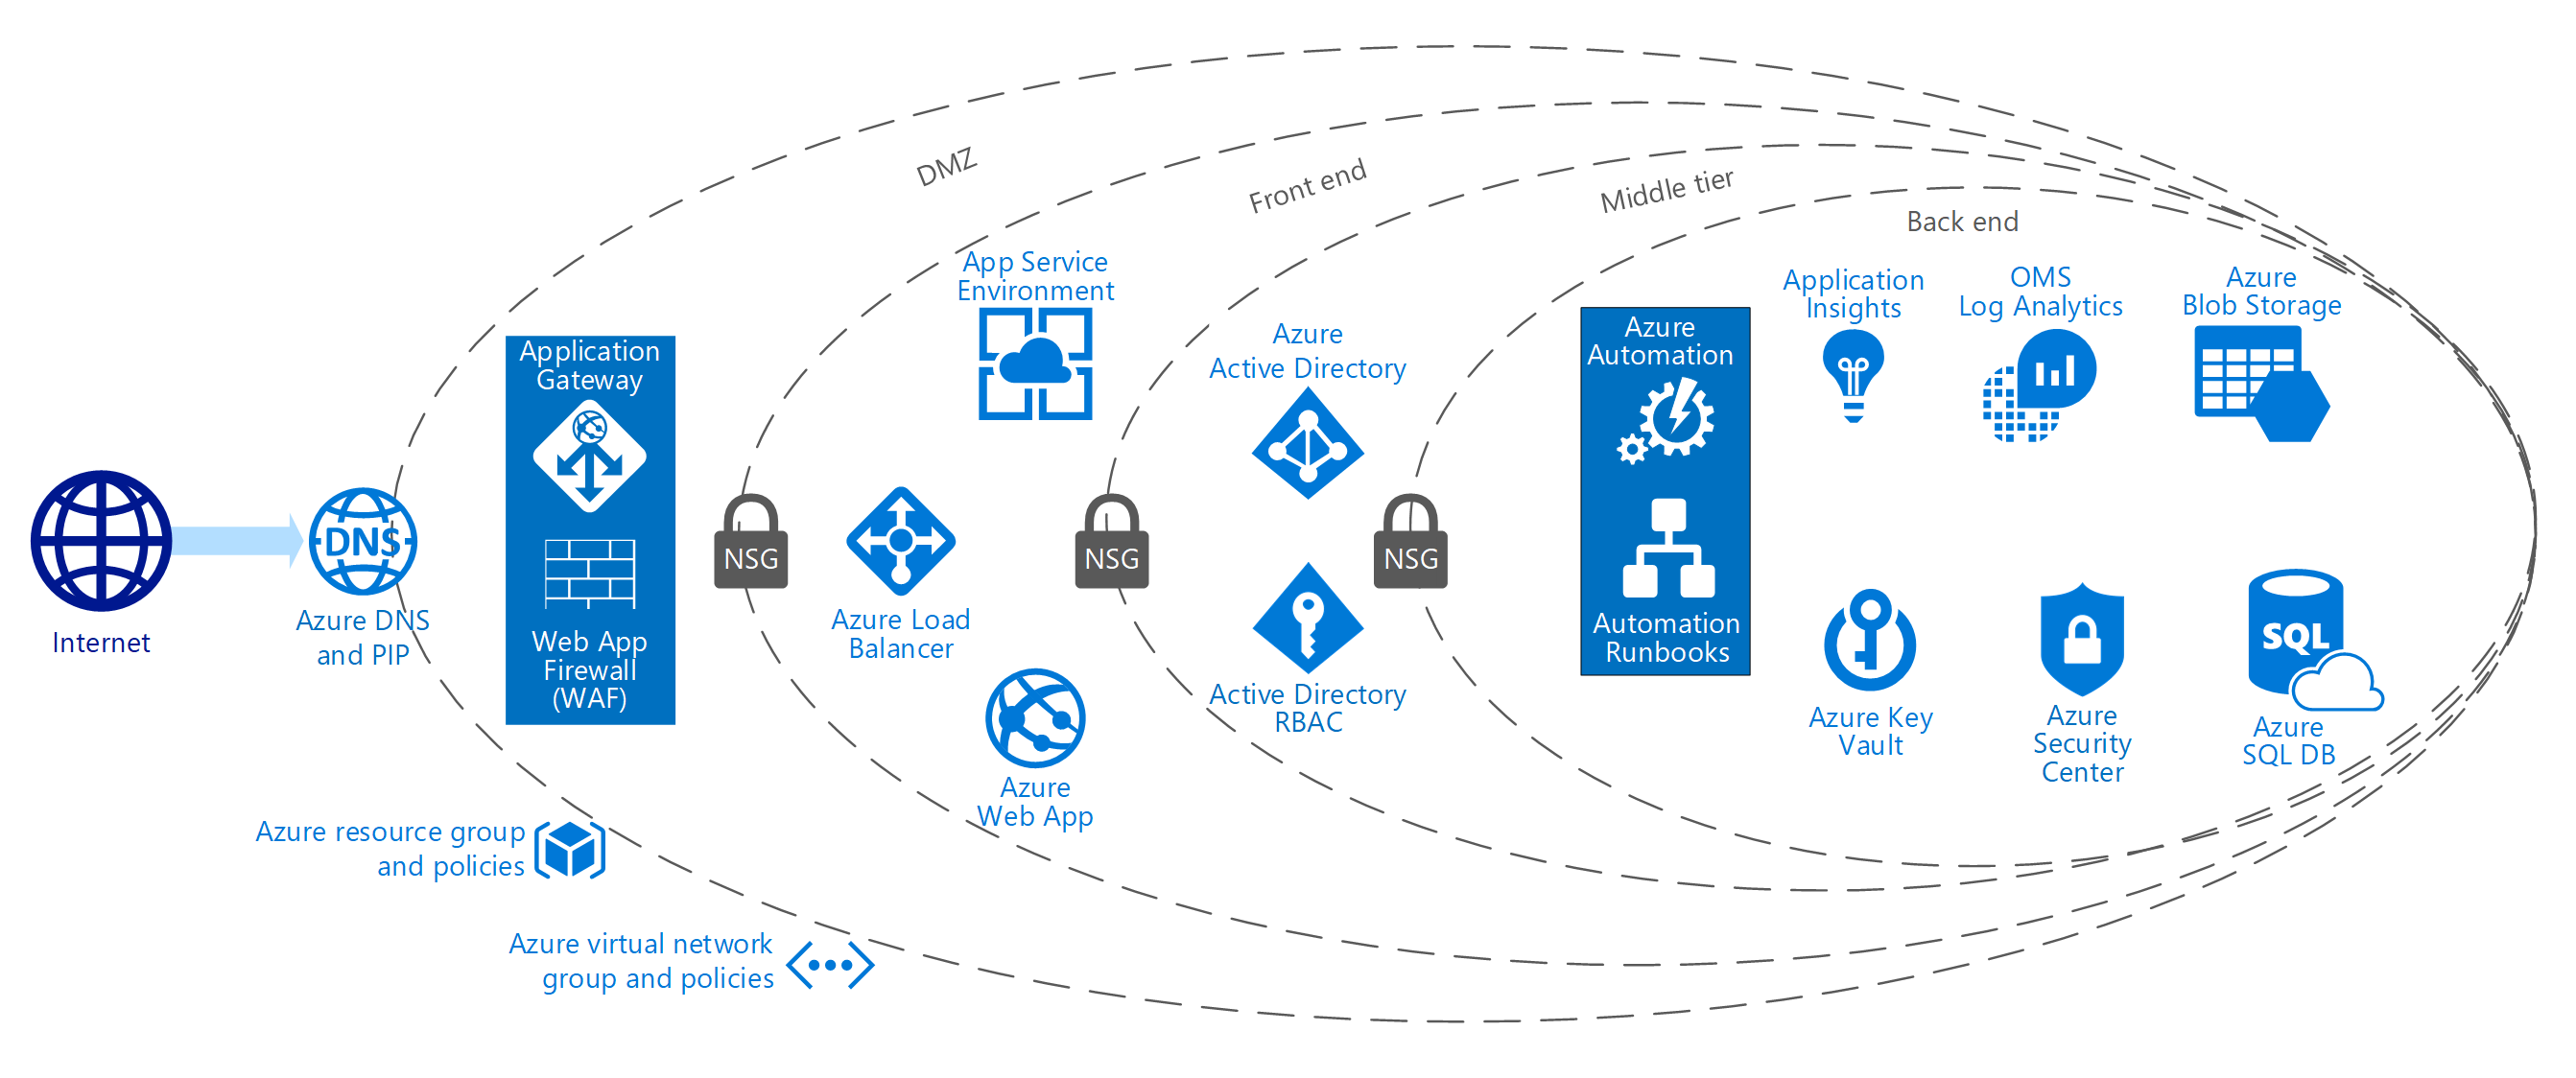 Azure security and compliance blueprint for pci dss compliant azure solutions blueprint malvernweather Gallery